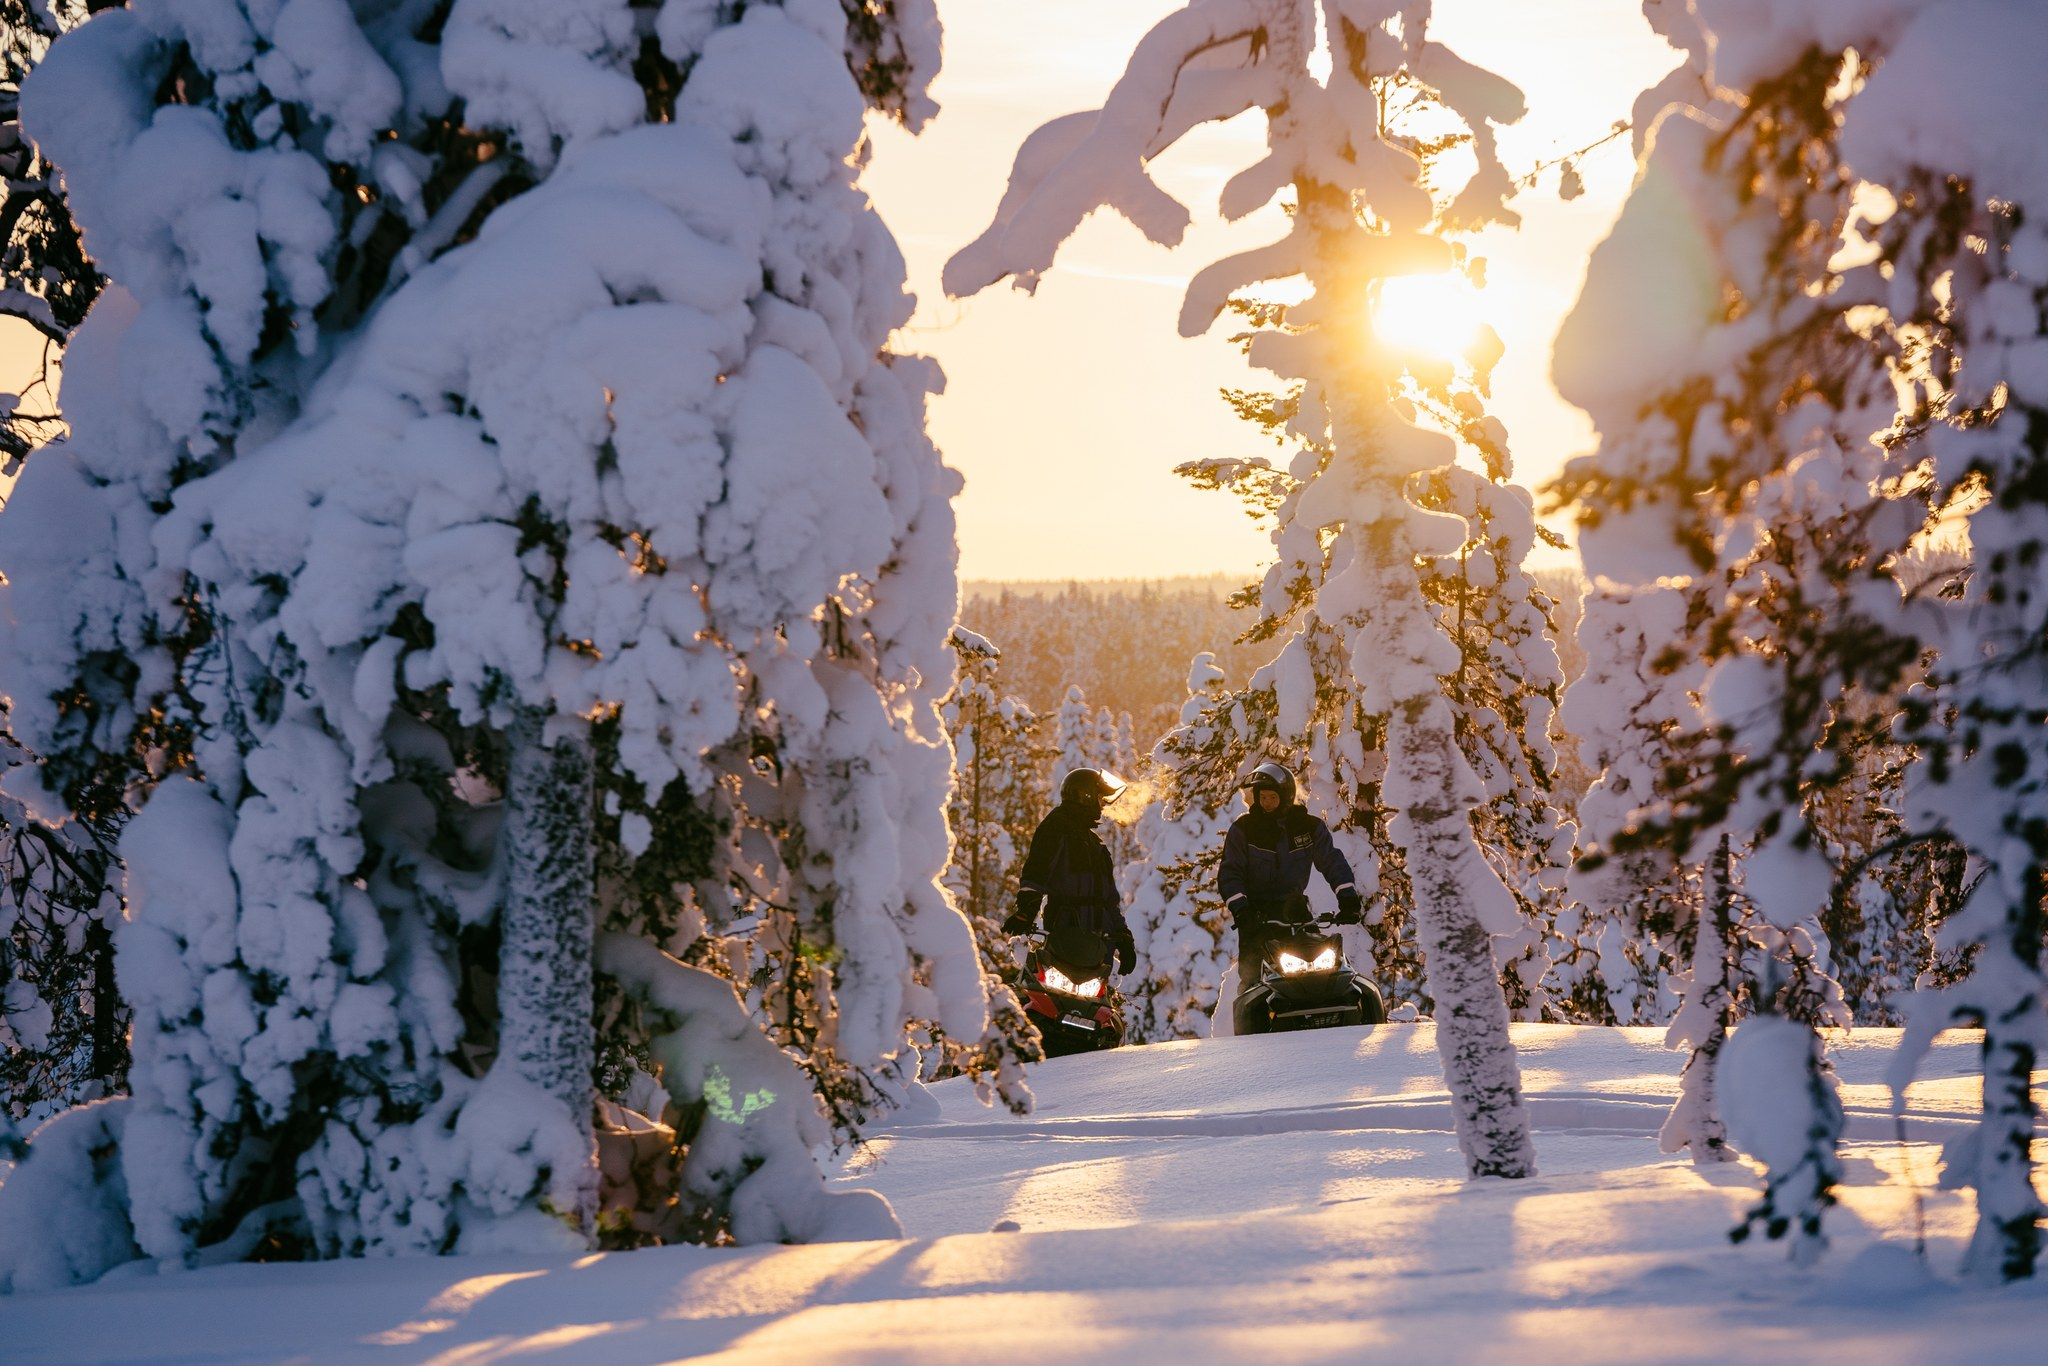 Snowmobile excursion in snowy winter forest, Rovaniemi, Lapland, Finland